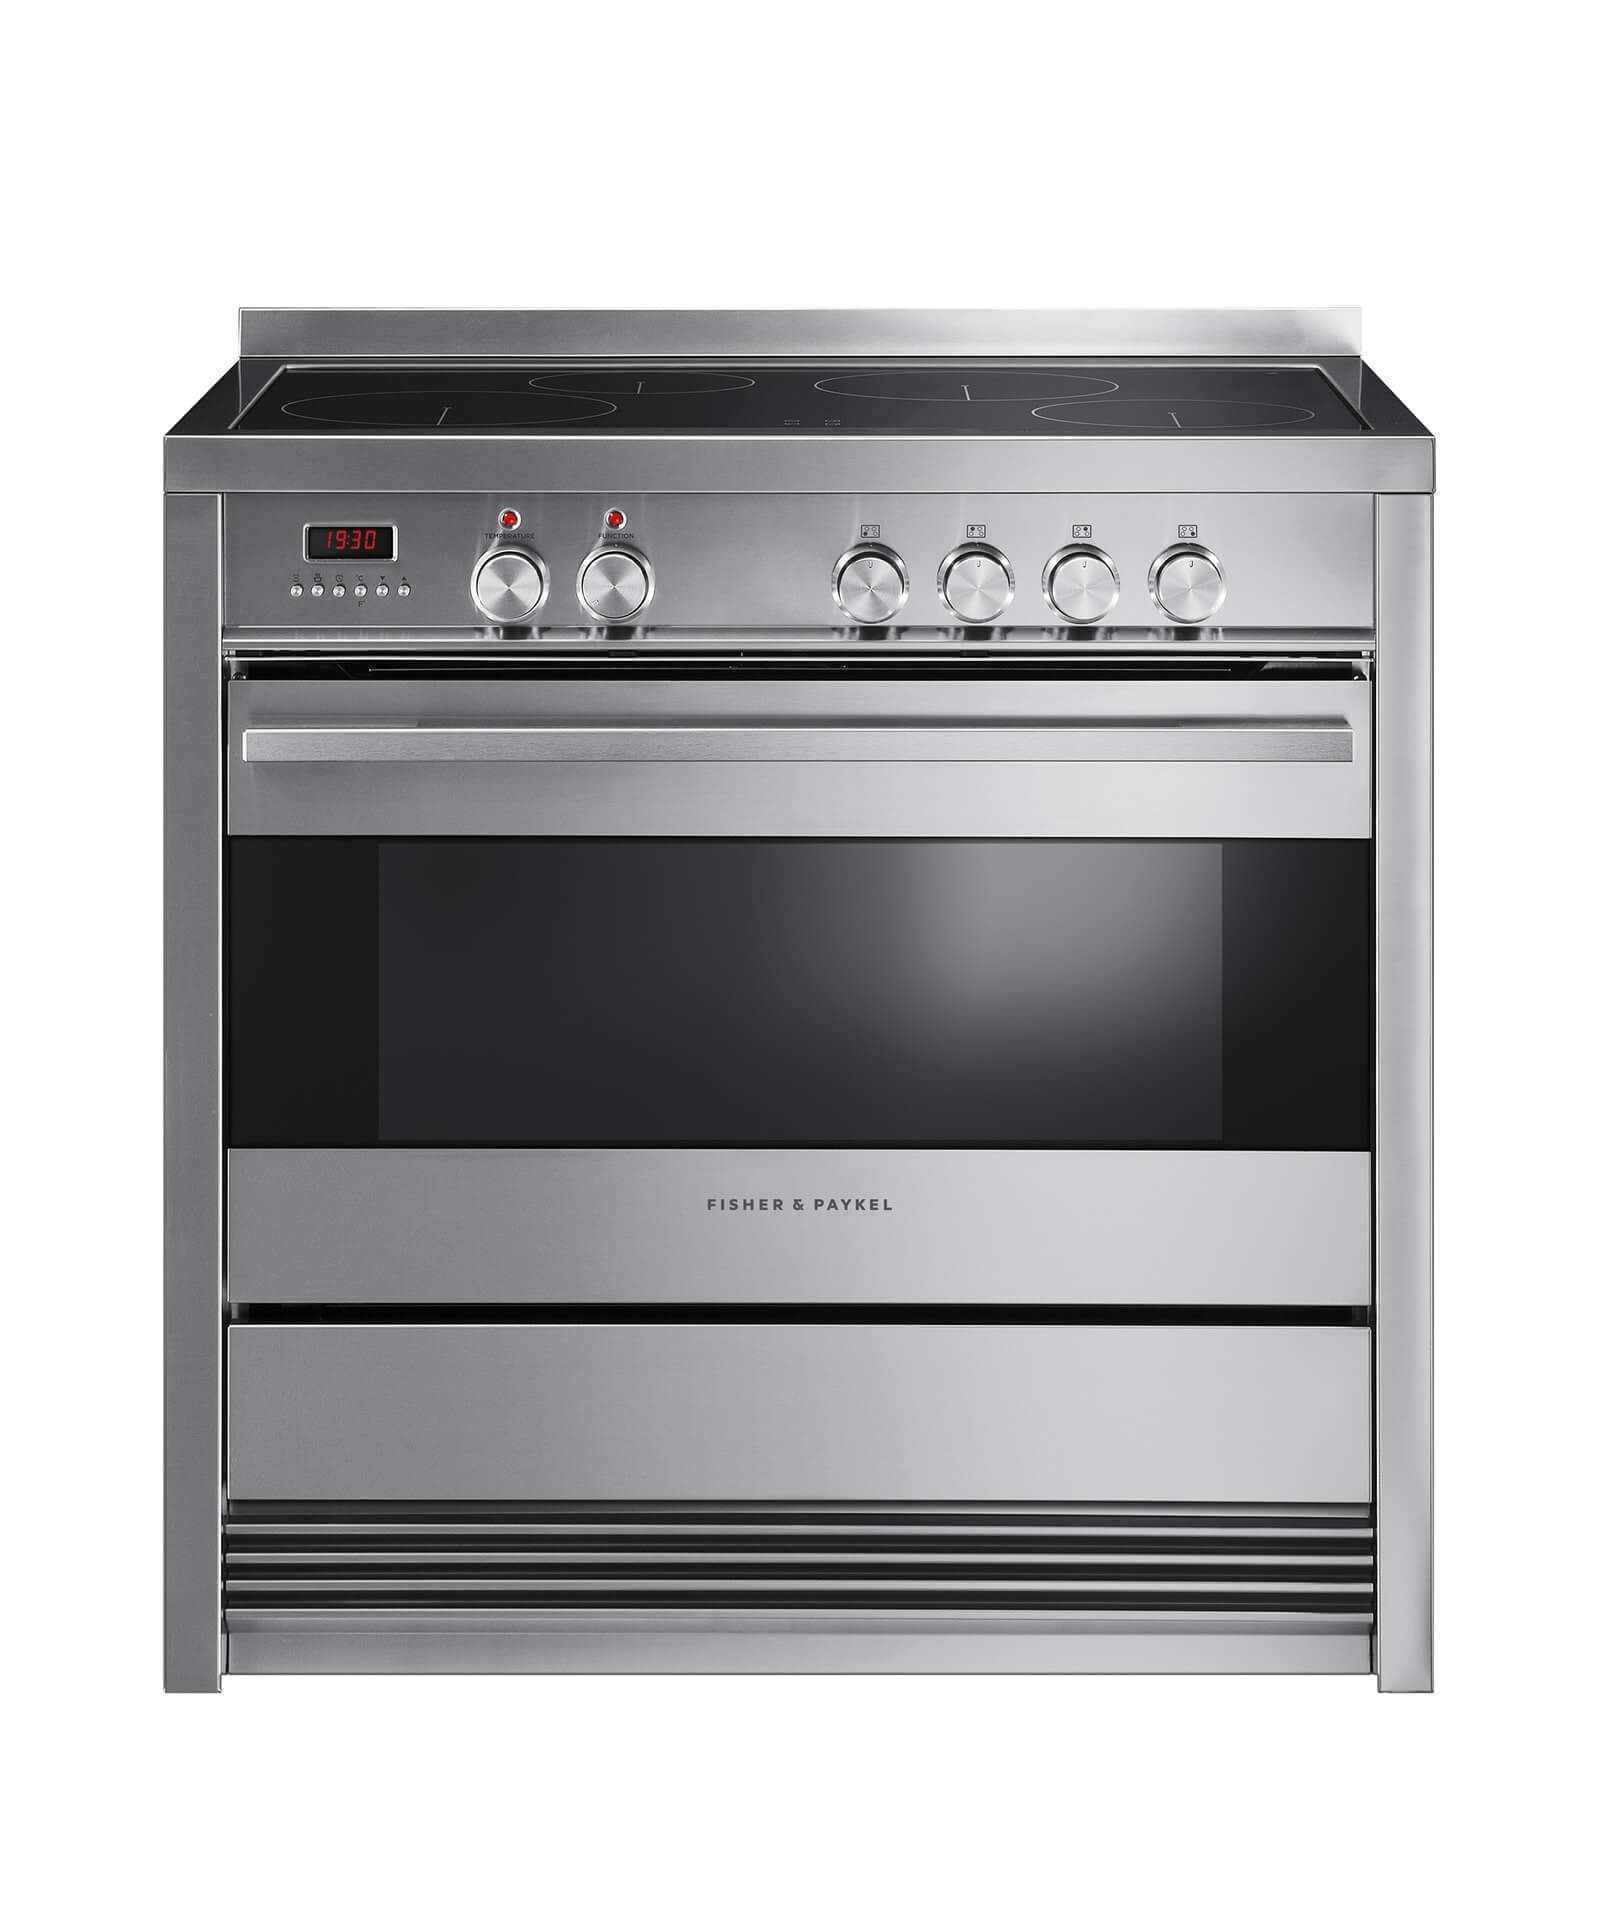 Induction Cooking Appliances ~ Or sdbsix fisher and paykel freestanding induction cooker